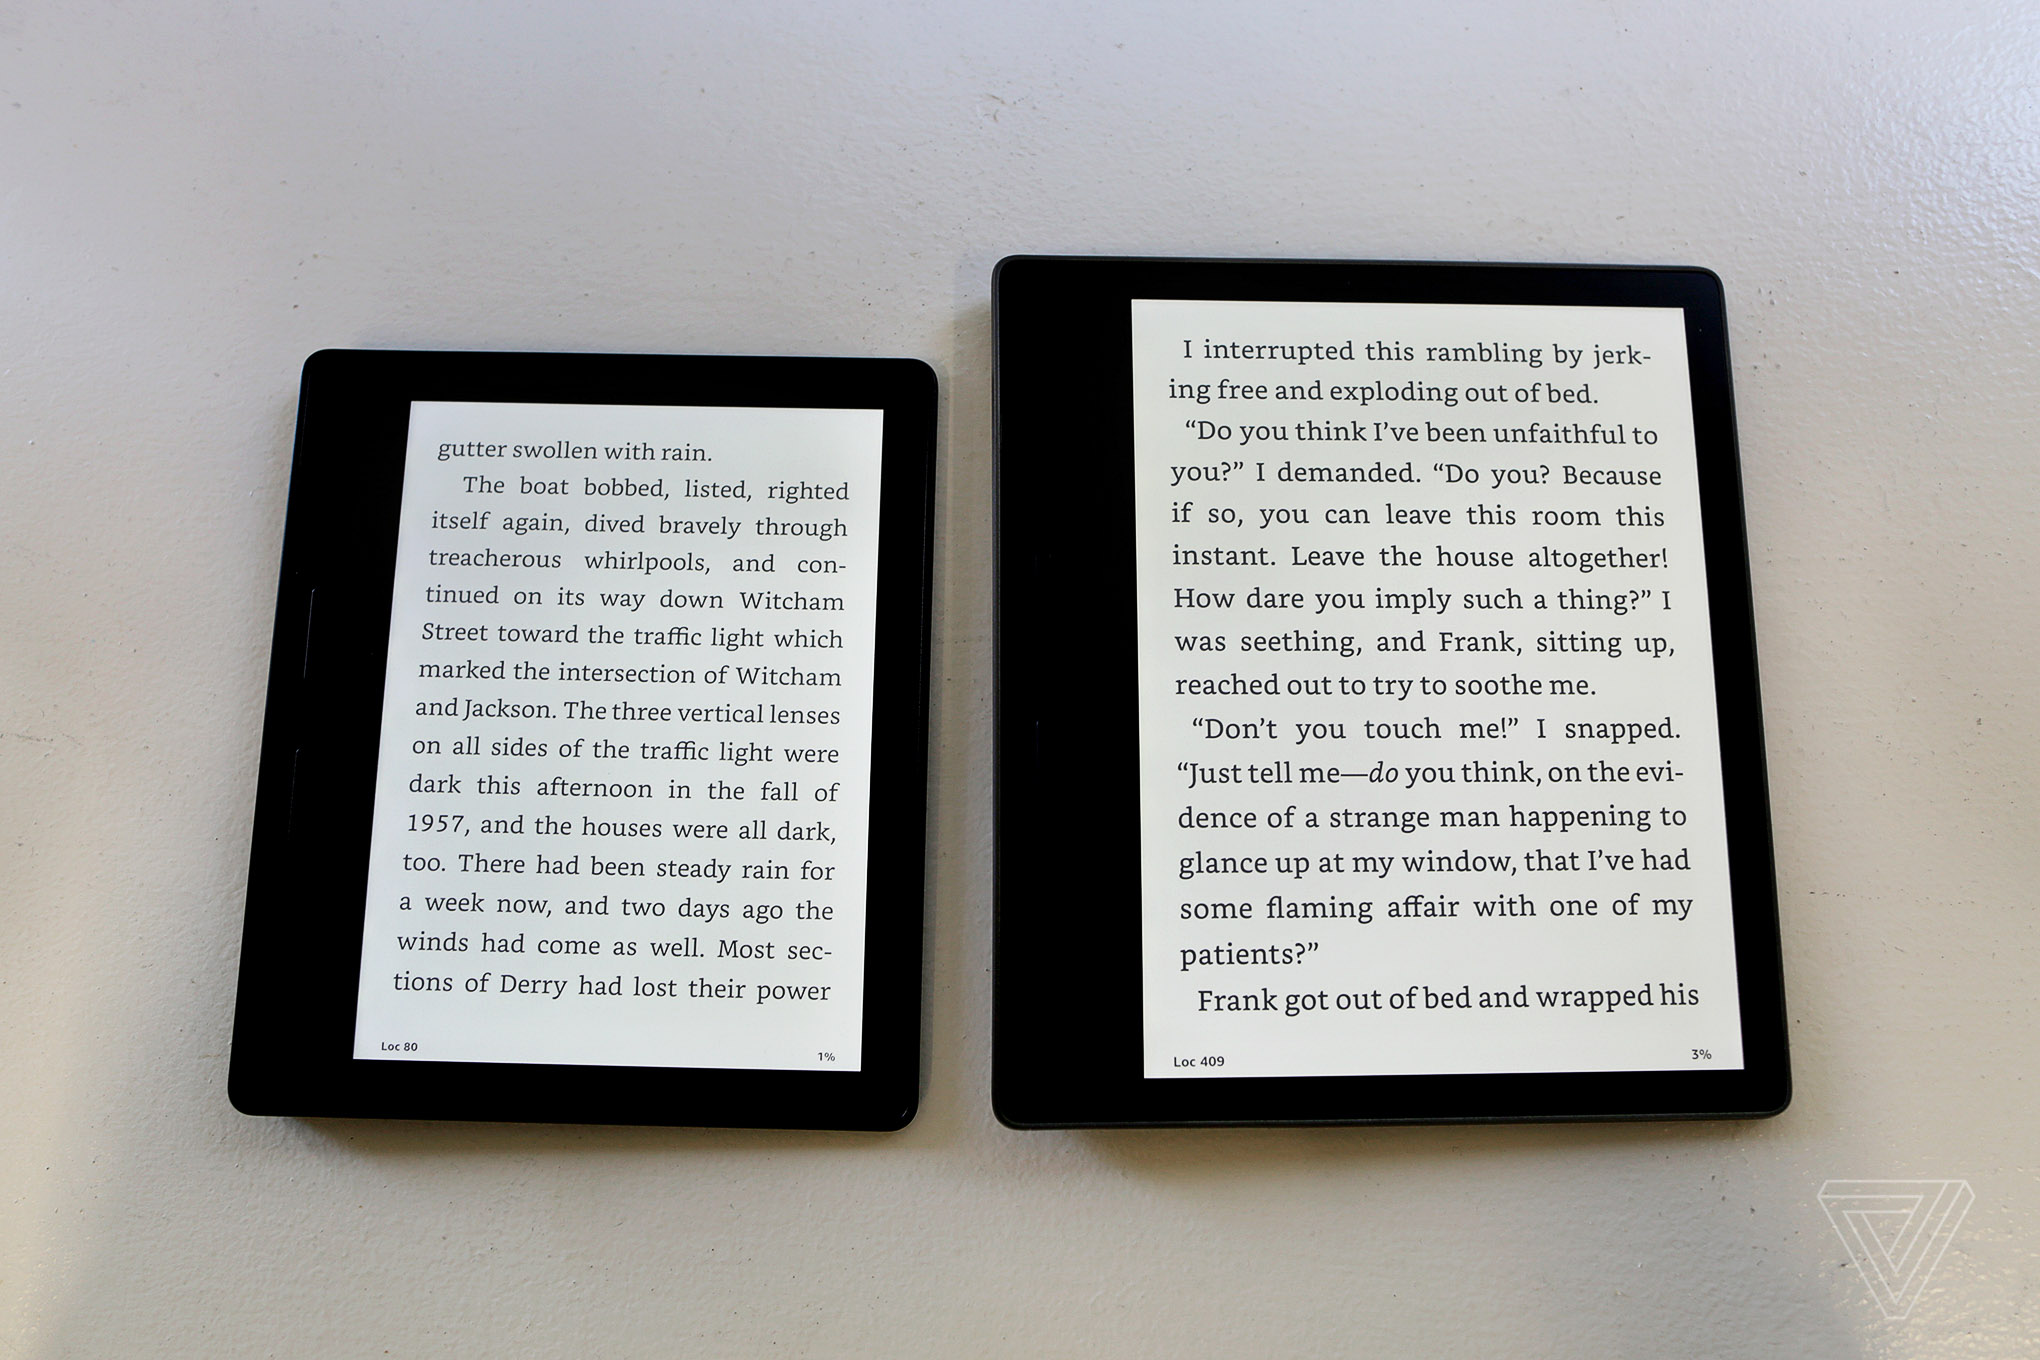 Finally, a waterproof Kindle! Meet the New Kindle Oasis